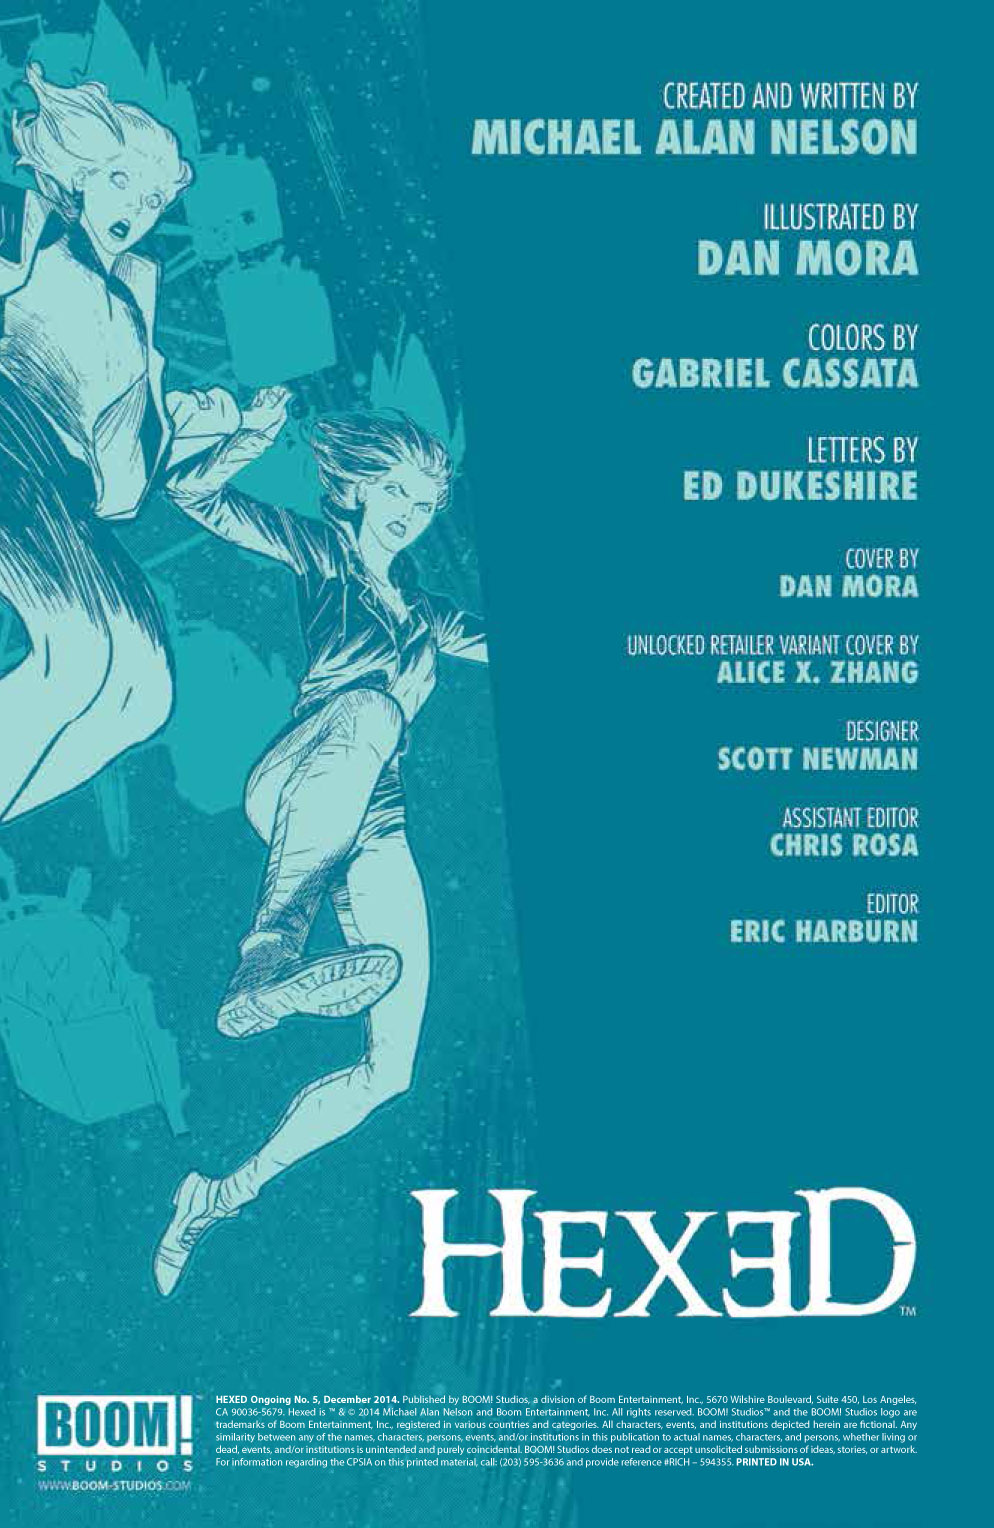 Hexed_005_PRESS-2.jpg